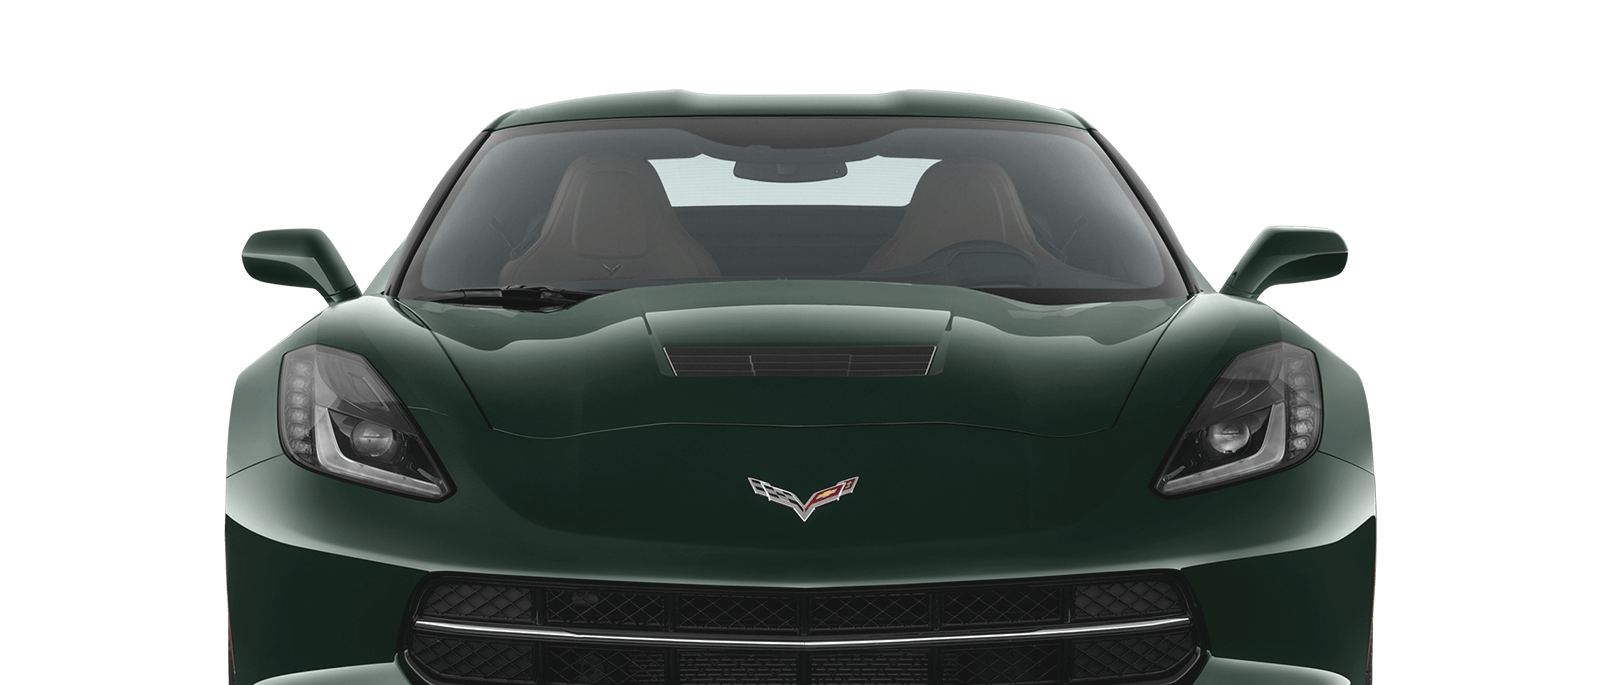 Chevrolet Corvette Stingray Car Rental